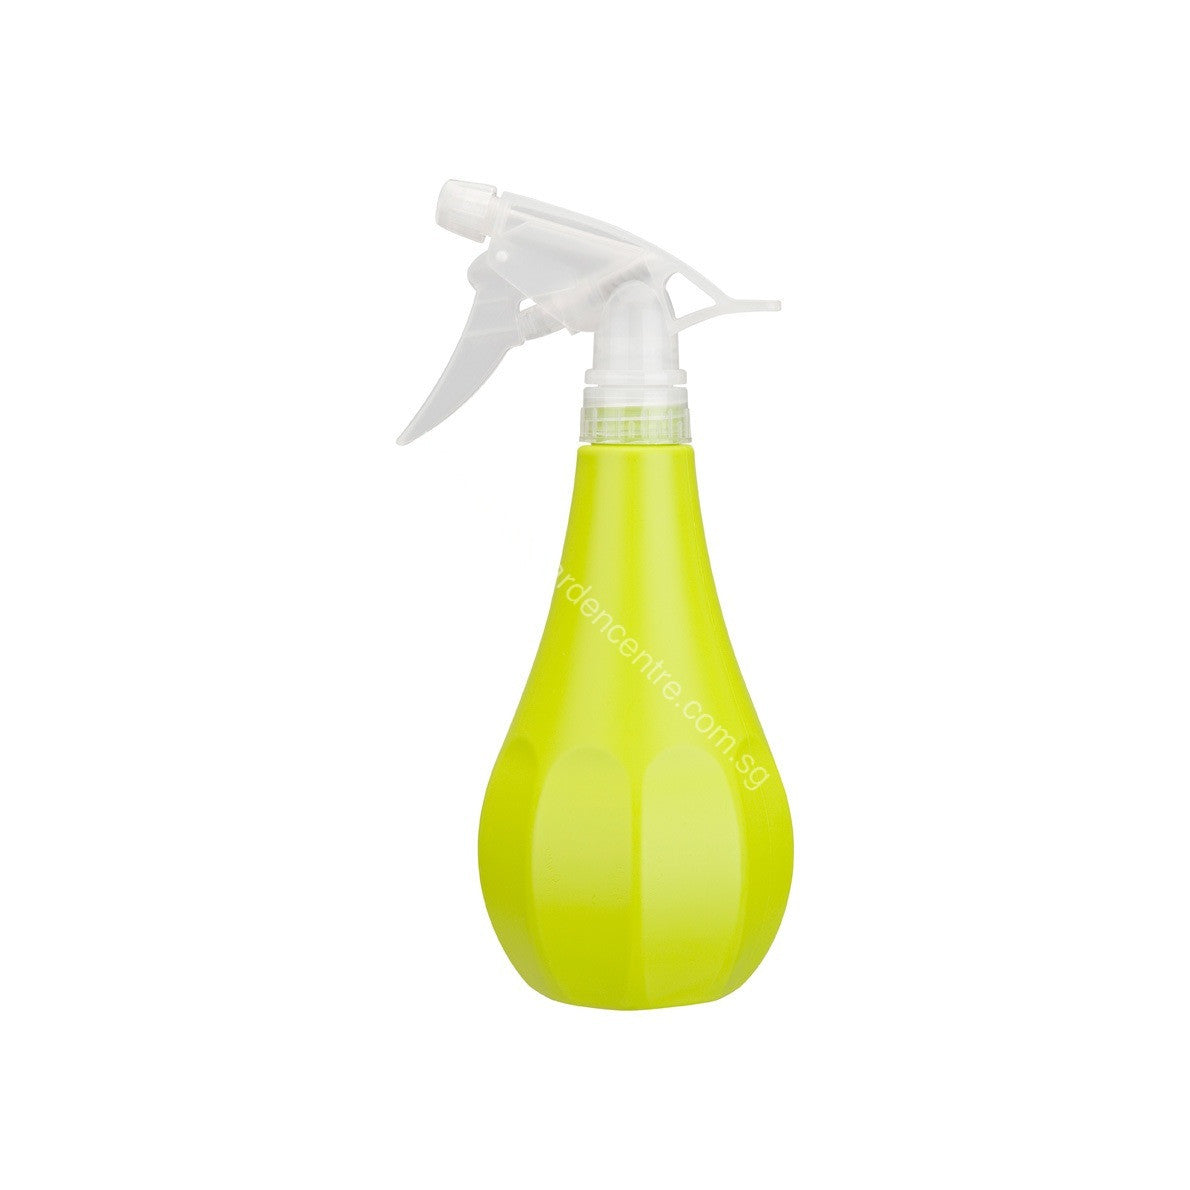 Oase Sprayer 0.5ltr in lime green